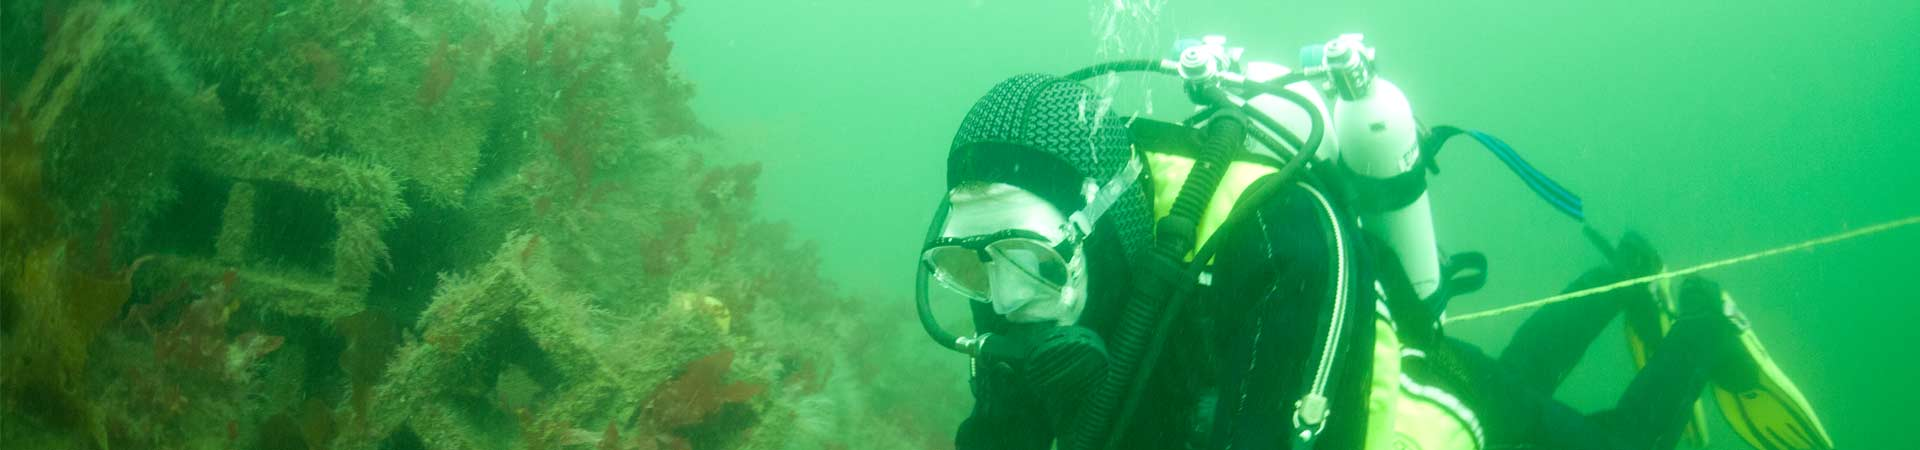 A diver surveying the artificial reef in Loch Linneh made from concrete bricks